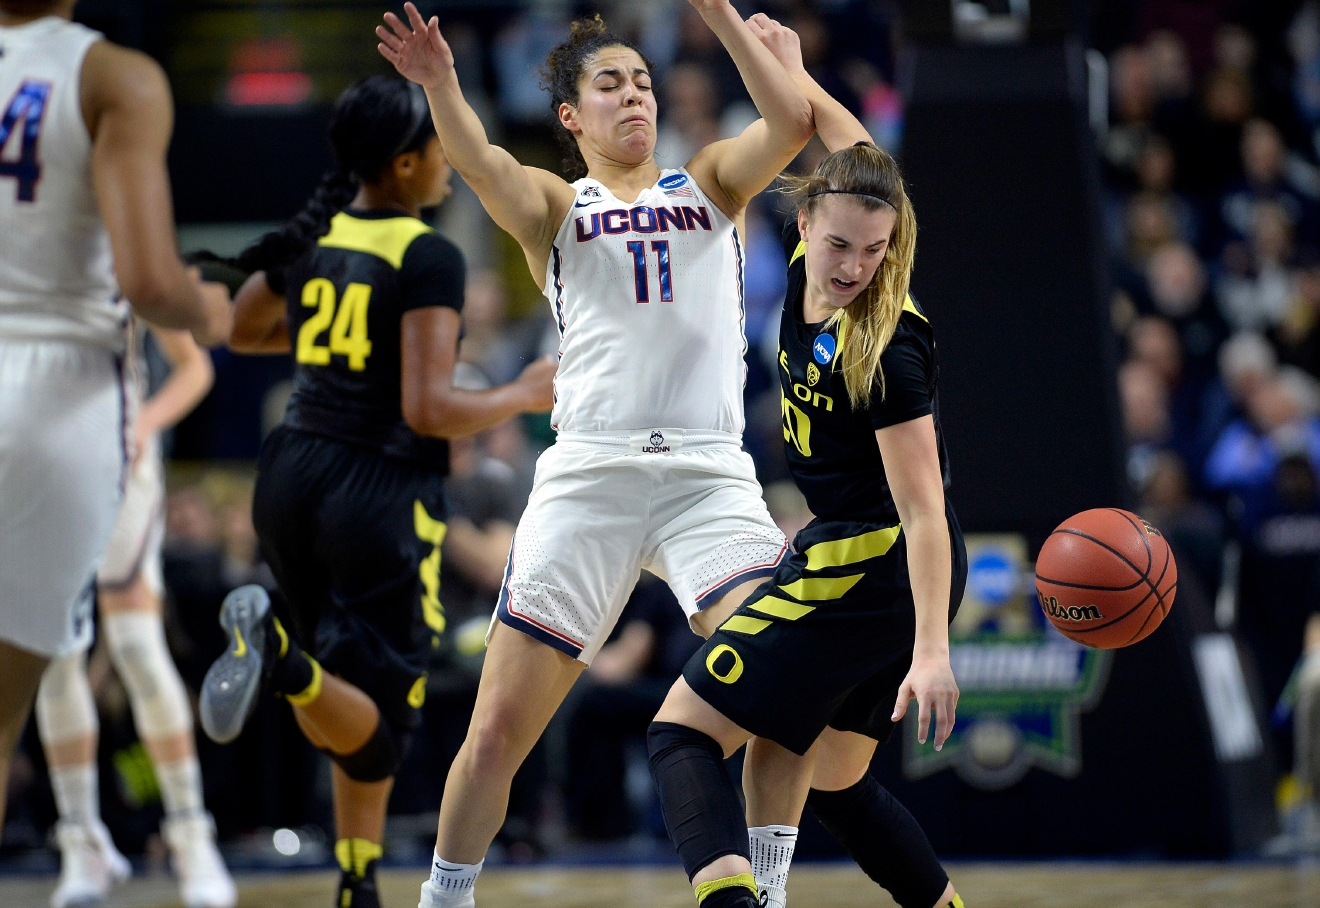 Oregon's Sabrina Ionescu, right, tries to gather the ball after running into the defense by Connecticut's Kia Nurse during the first half of a regional final game in the NCAA women's college basketball tournament, Monday, March 27, 2017, in Bridgeport, Conn. (AP Photo/Jessica Hill)